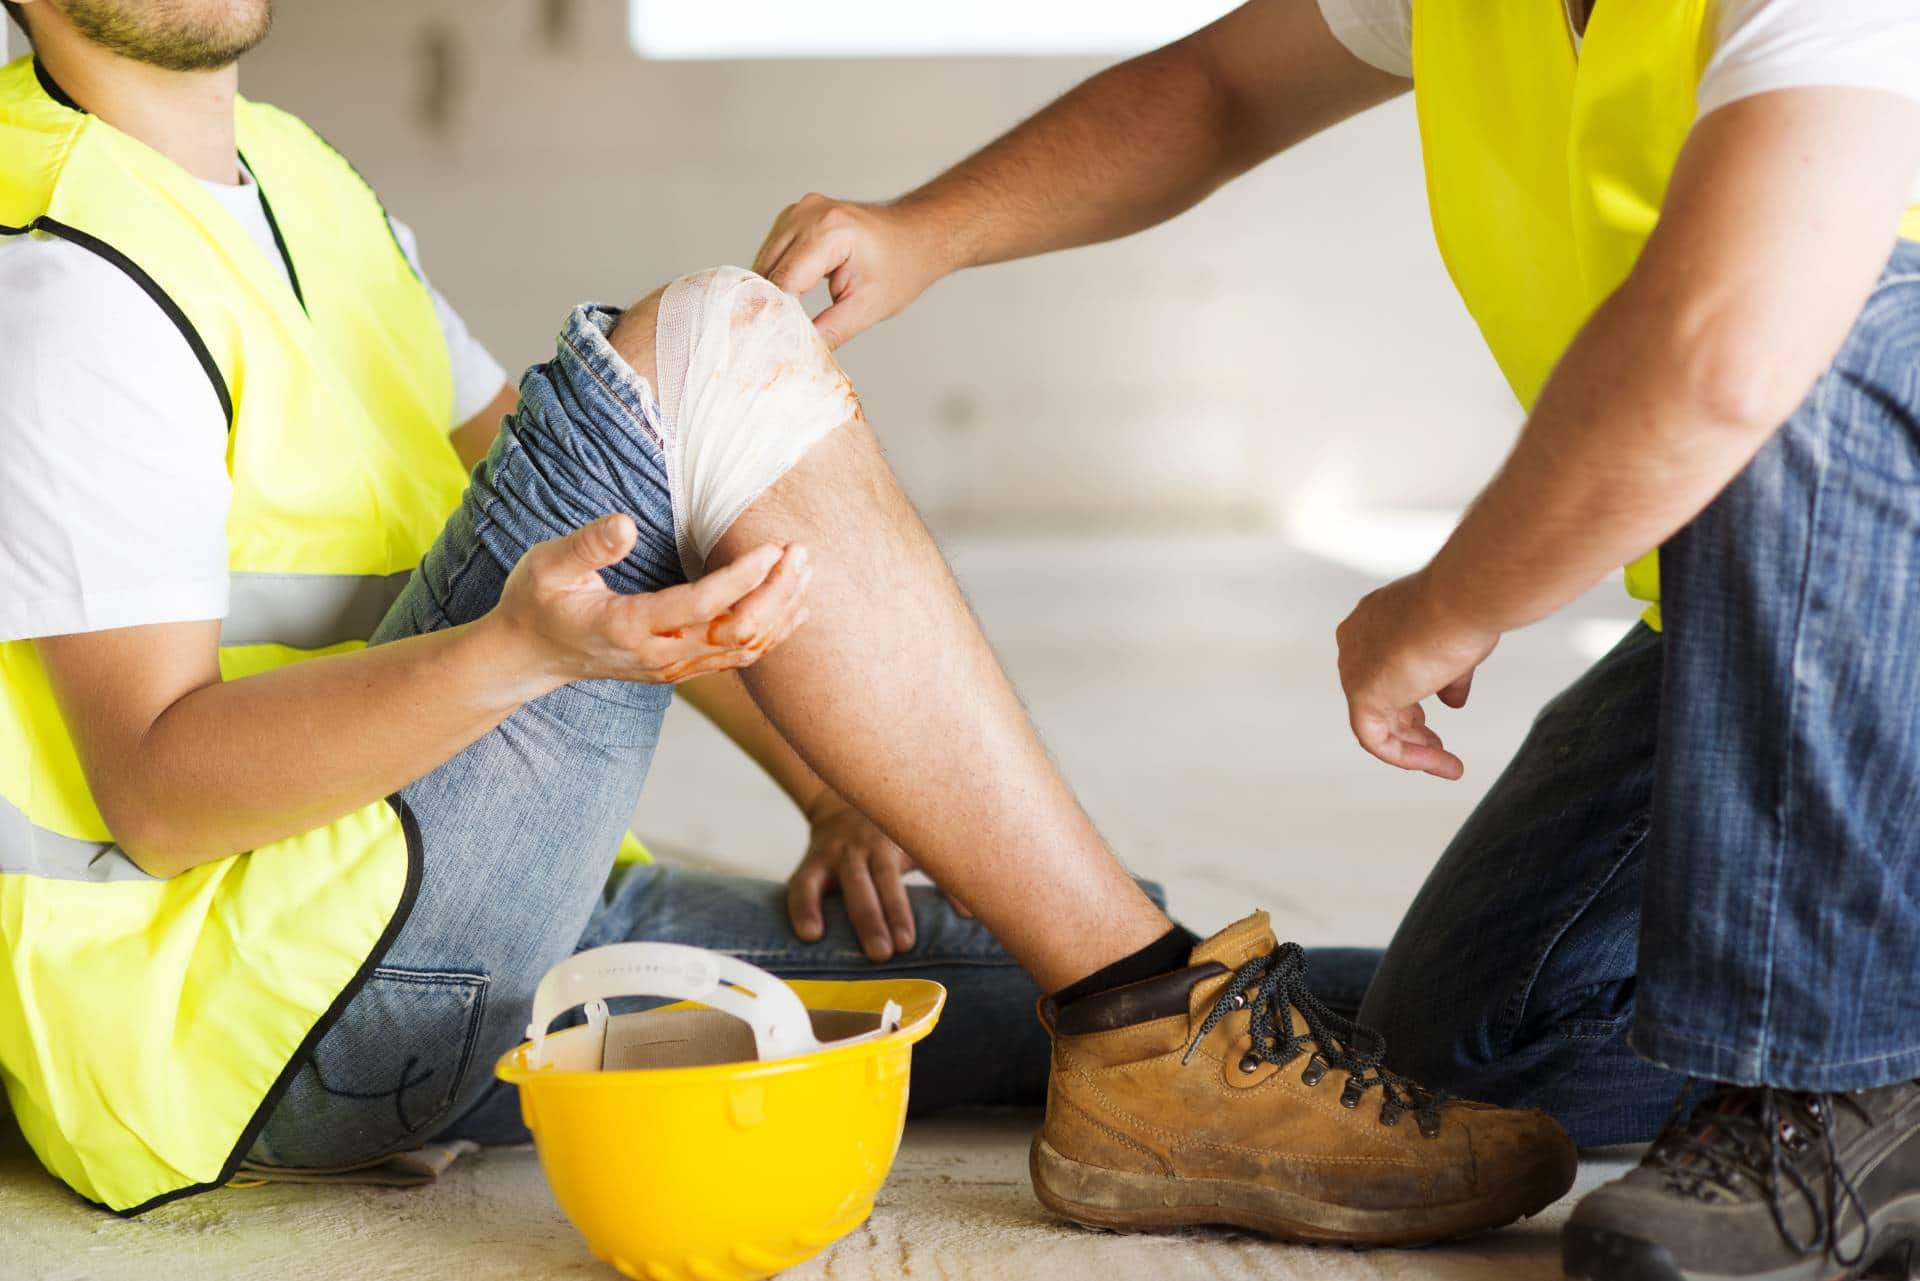 Hurt on the job? Schedule a free consultation with our personal injury lawyers at the Angell Firm in Peachtree Park.